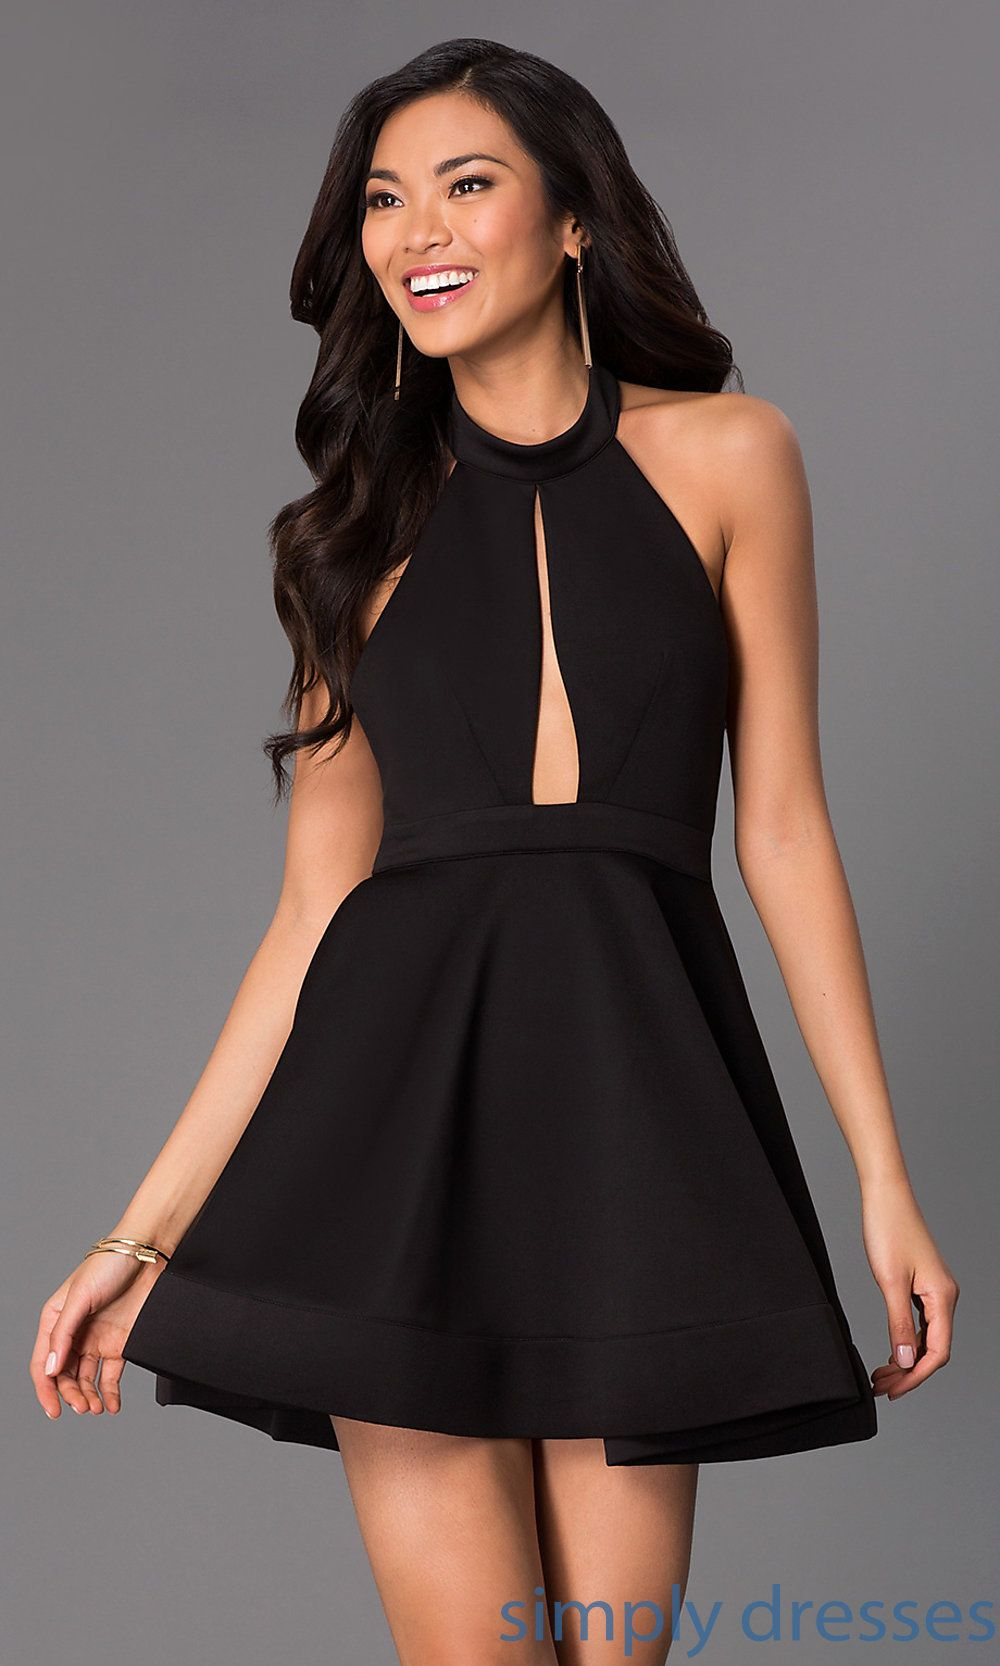 Short Black Halter Dress, Open Backs, Cut Out | Shops, Dresses for ...